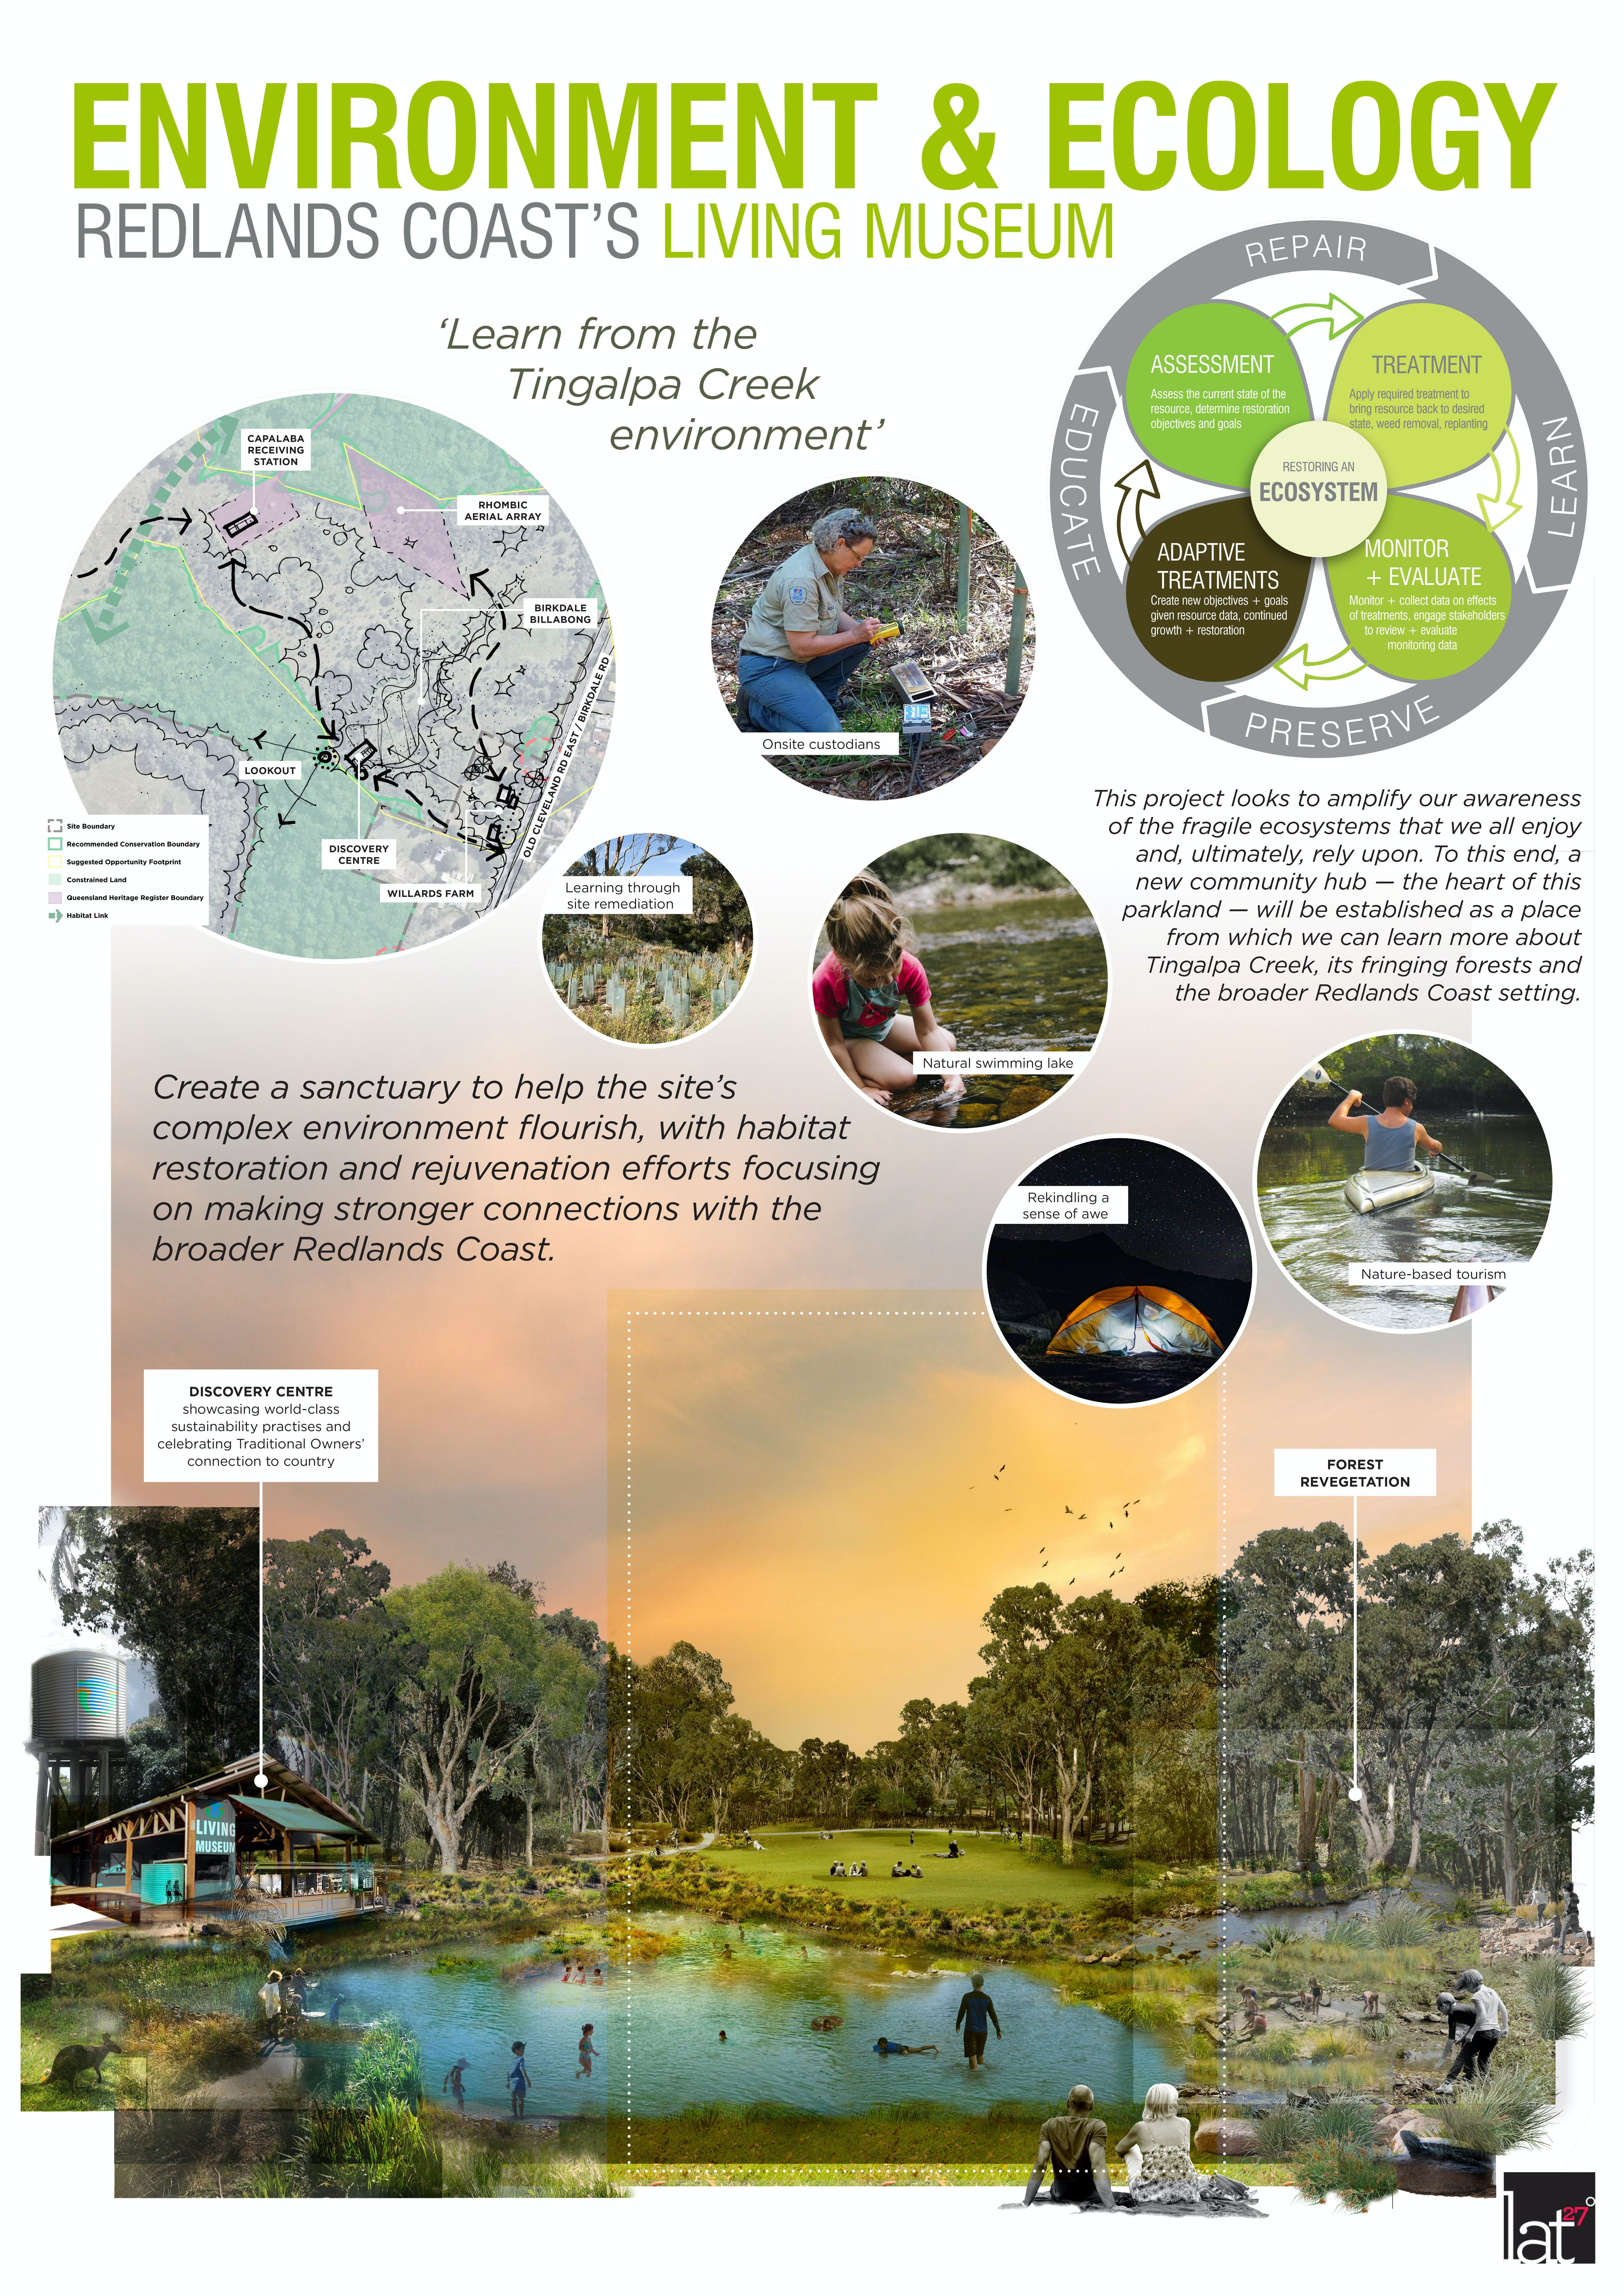 Environment and Ecology Vision Board - by Lat27